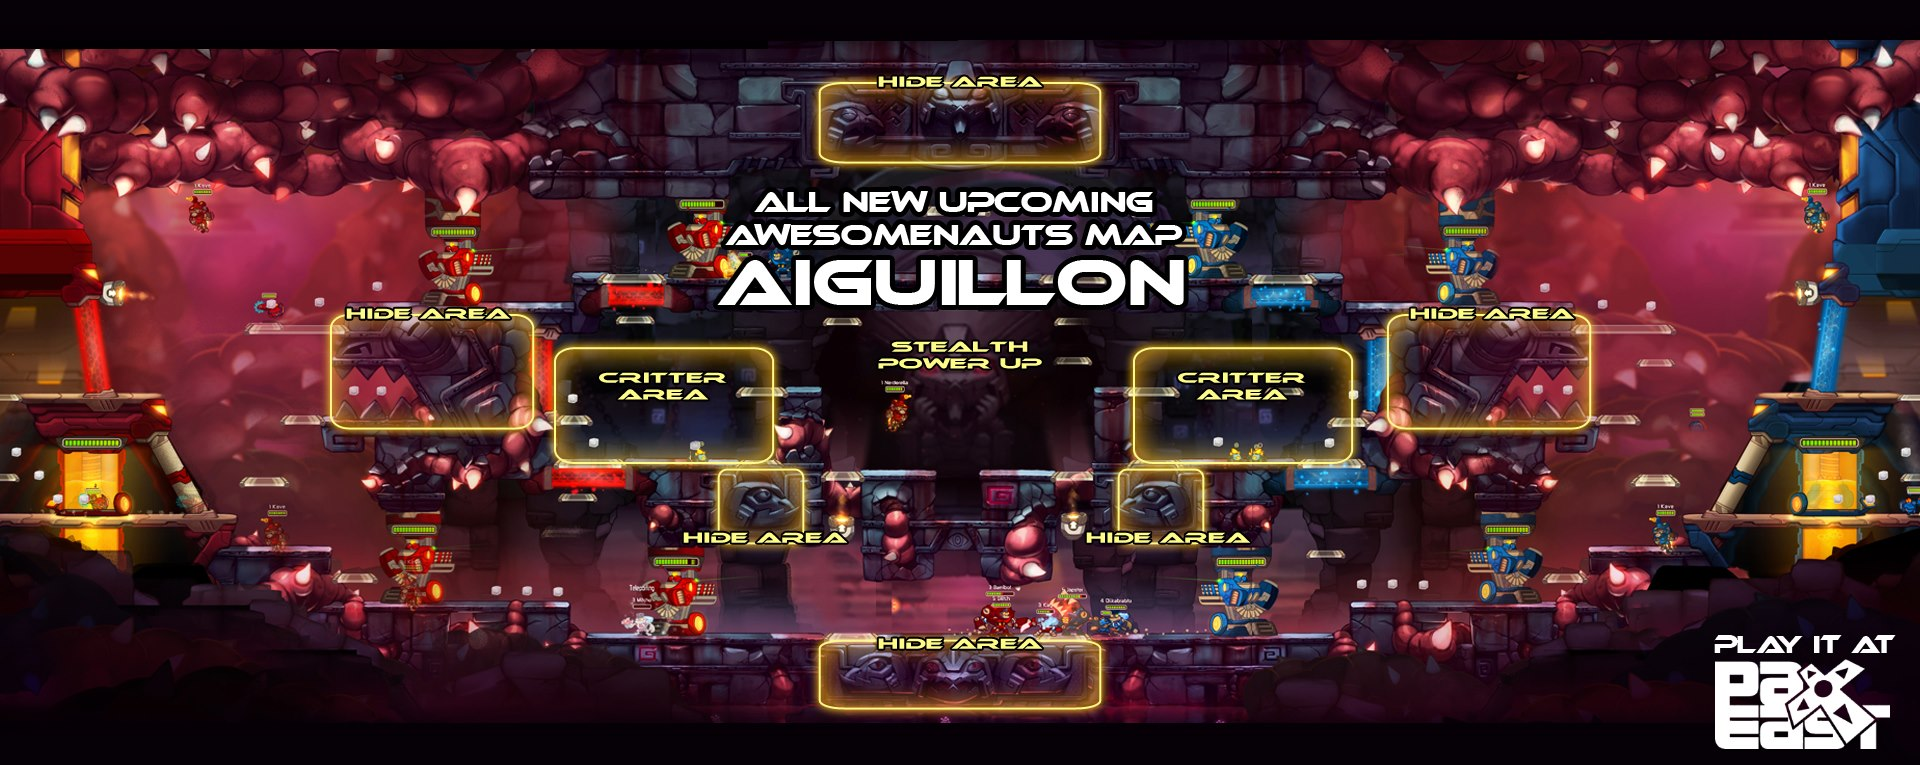 PAX East: Hands on with the new 'Awesomenauts' map Aiguillon